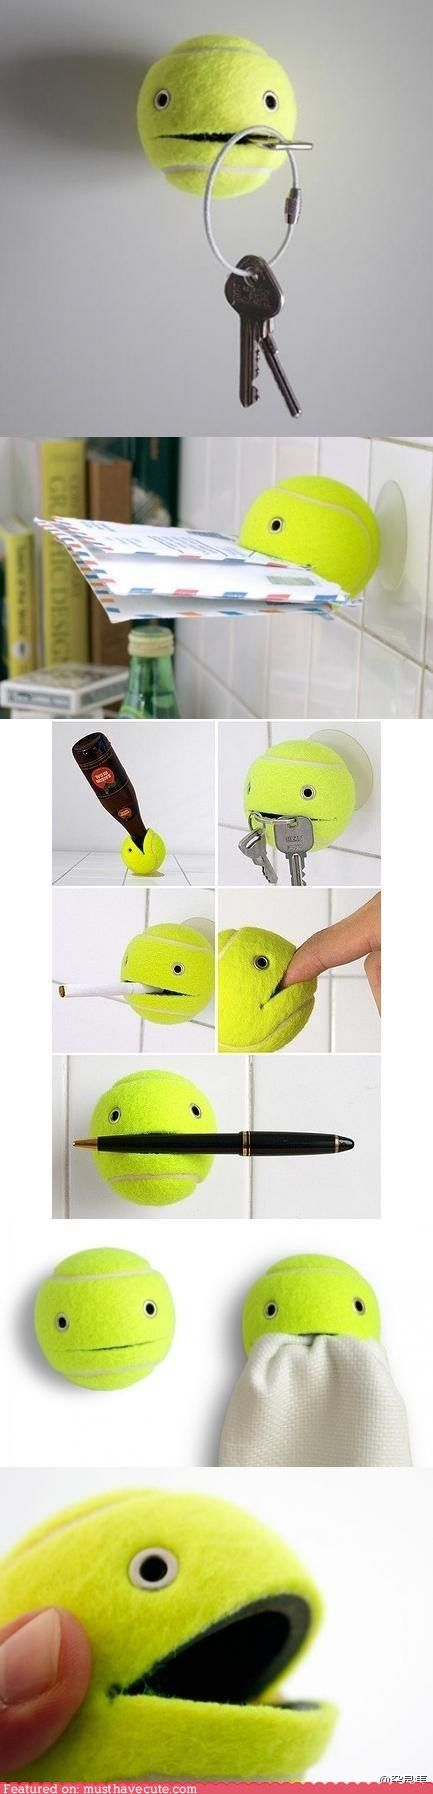 Totally doing this Cool Idea: Ball Holders, Stuff, Cute Ideas, Things, Keys Holders, Diy, Tennis Ball, Crafts